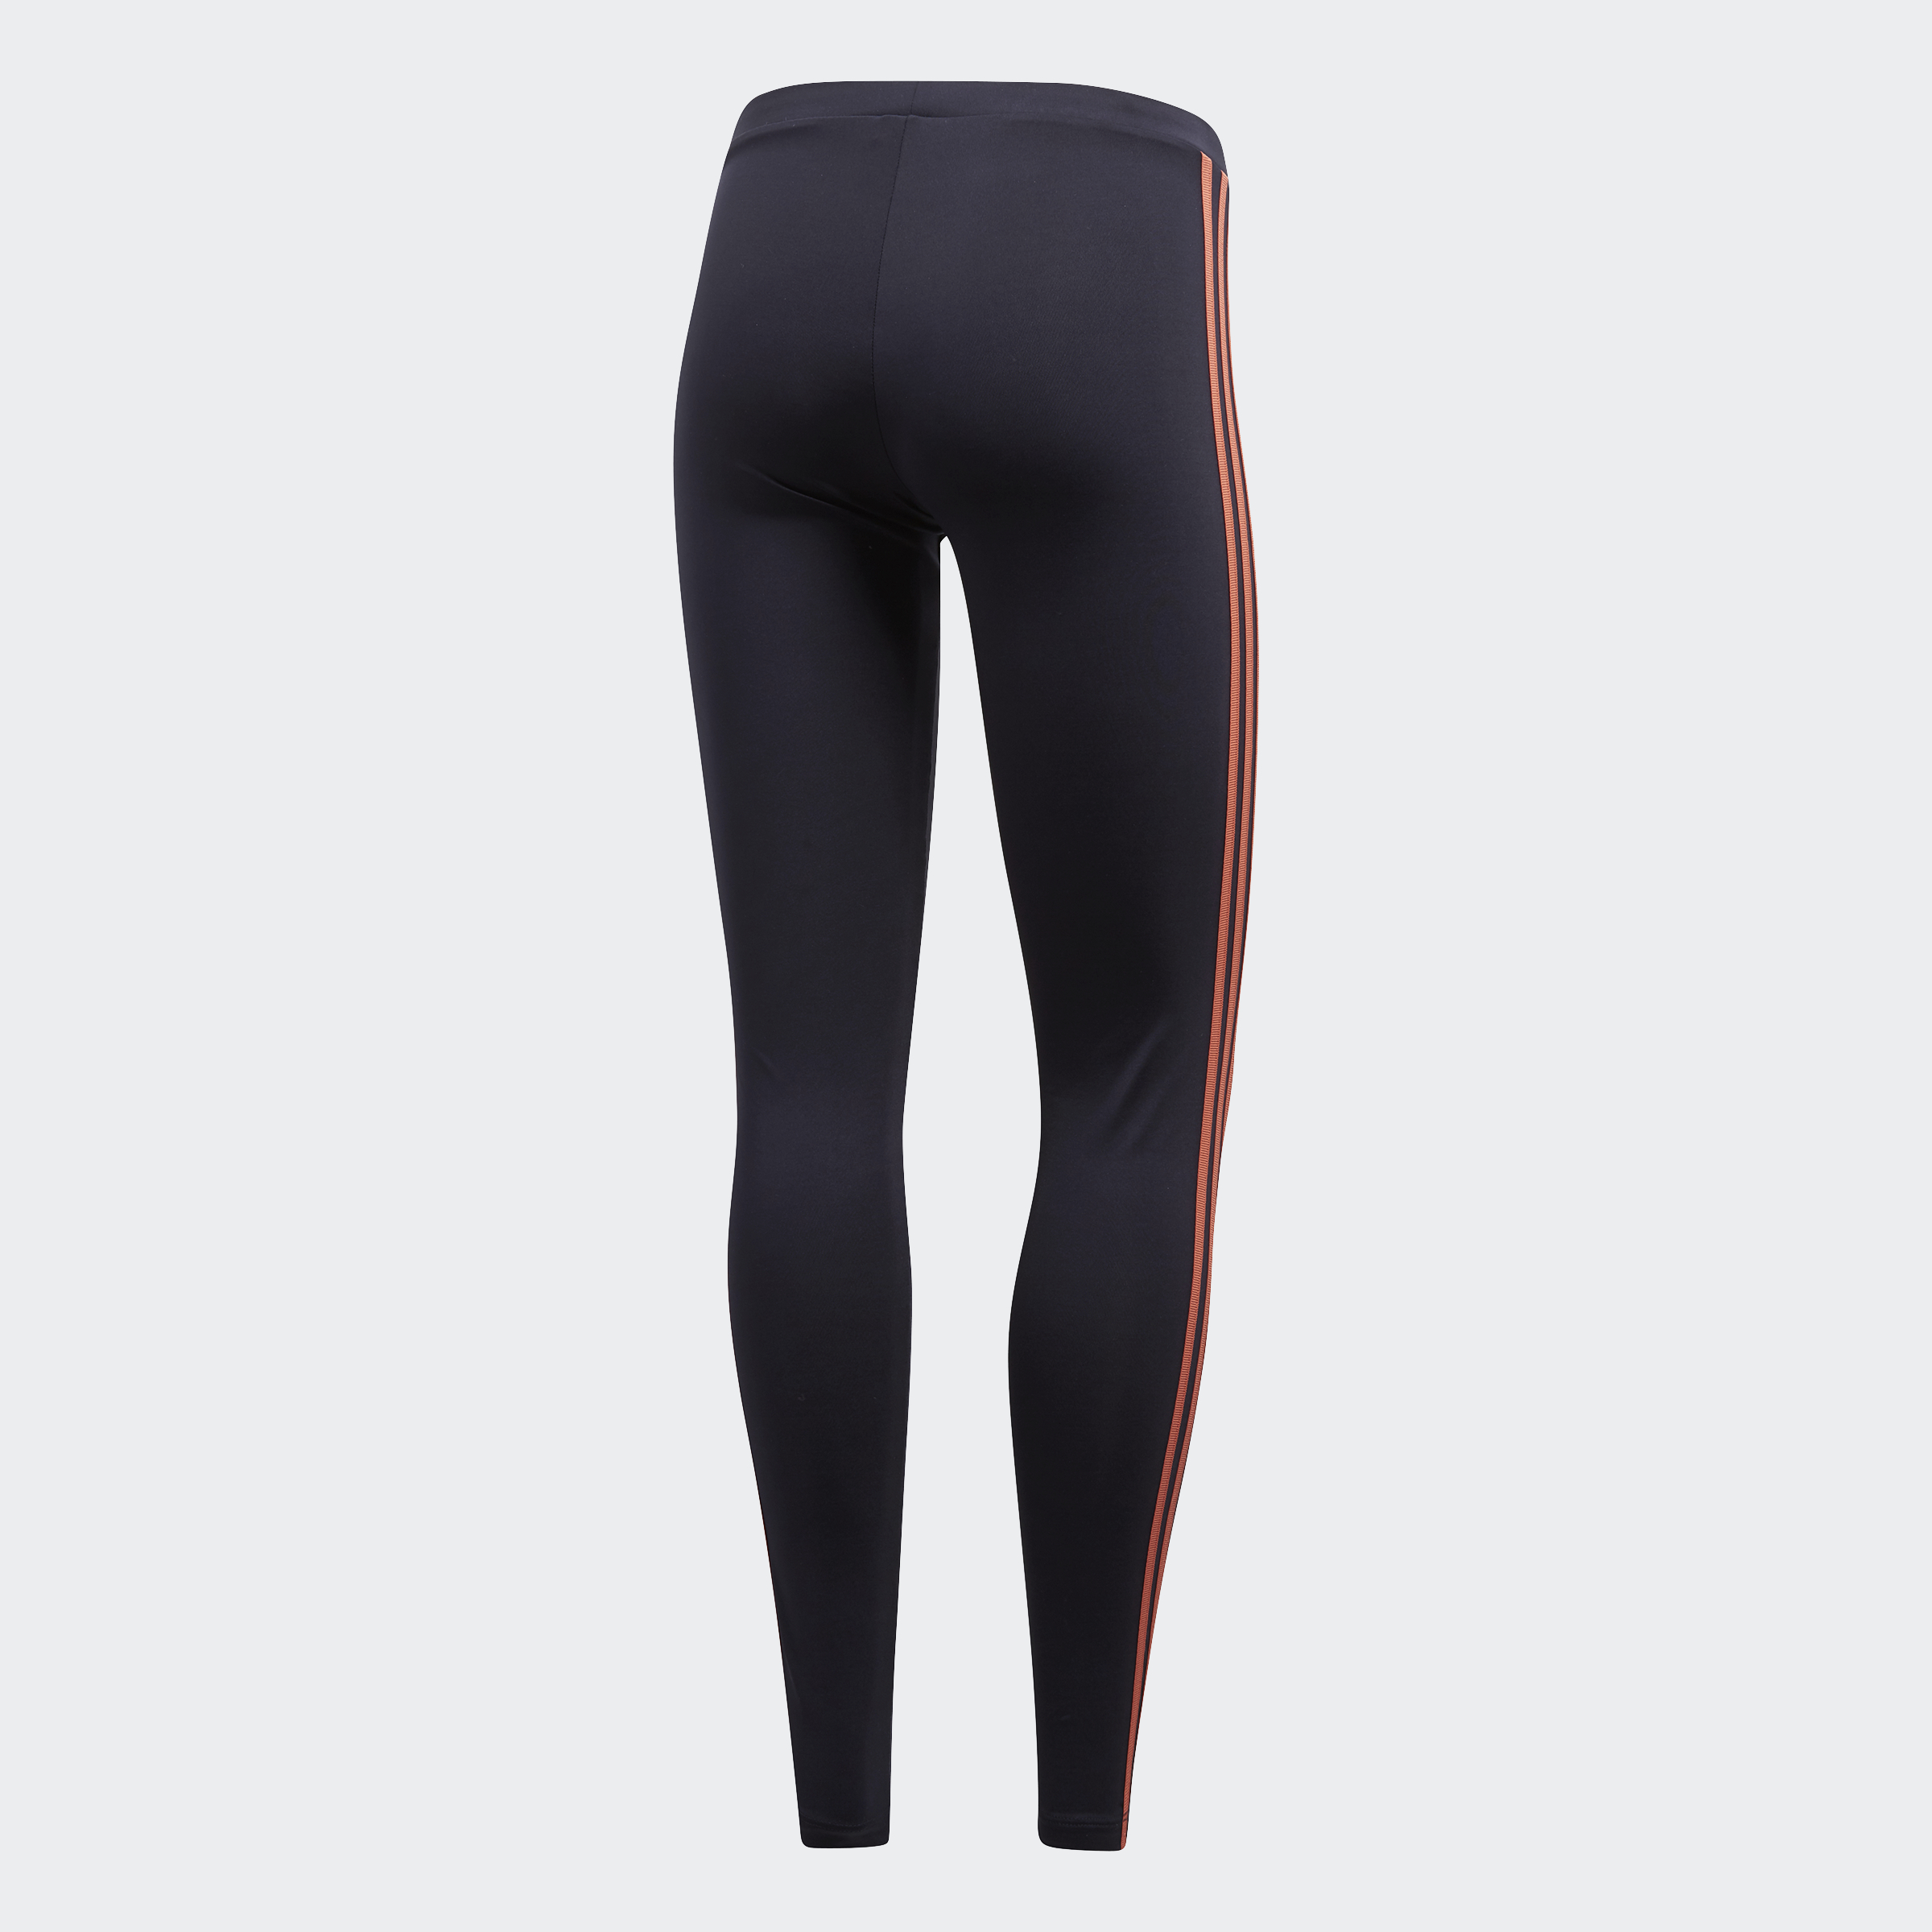 cea72c817f1c7 Yükle (2400x2400)Adidas Active Icons Tights at £ 20.96 love the brandsThis  website uses cookies to ensure you get the best experience.